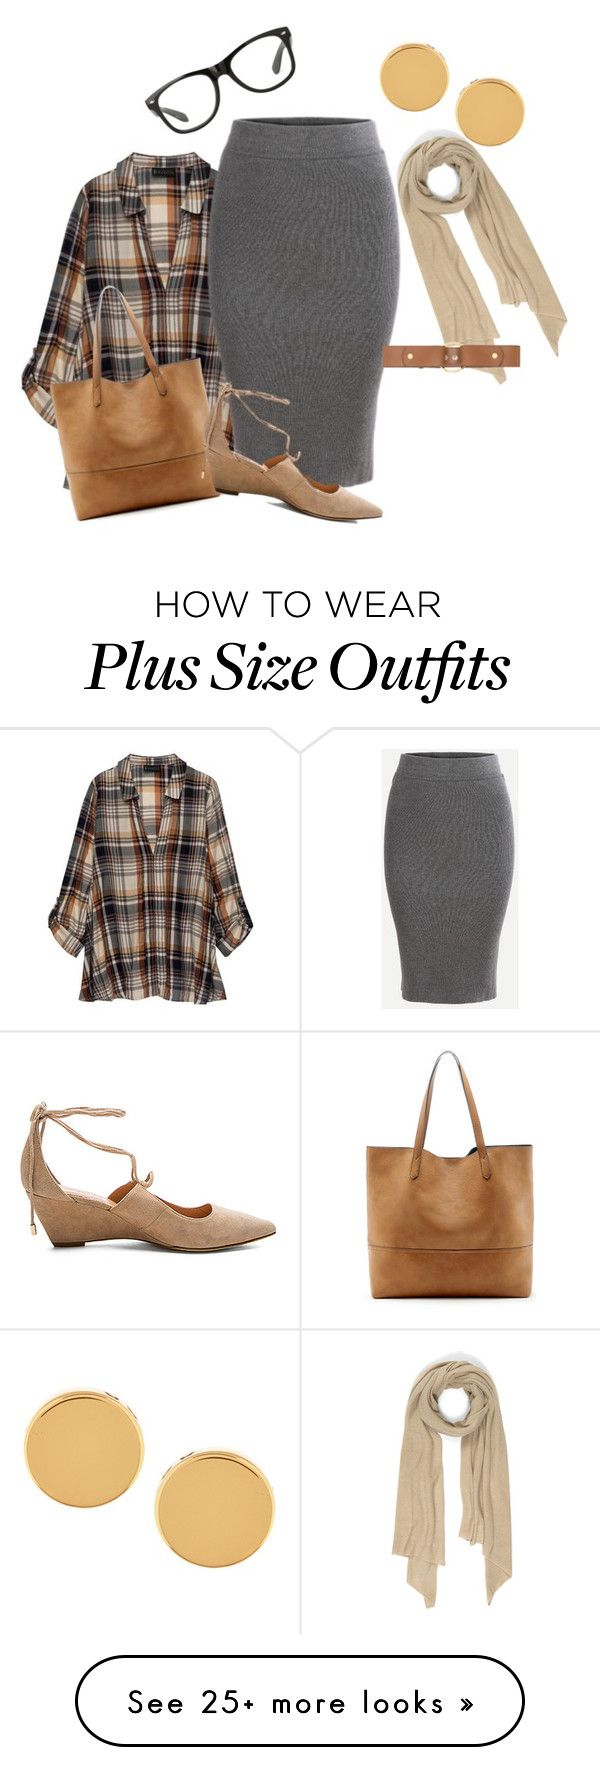 """Plus size plaid chic3/work"" by xtrak on Polyvore featuring Bobeau, Cash Ca, Marni, Sole Society, Sigerson Morrison and Trina Turk"